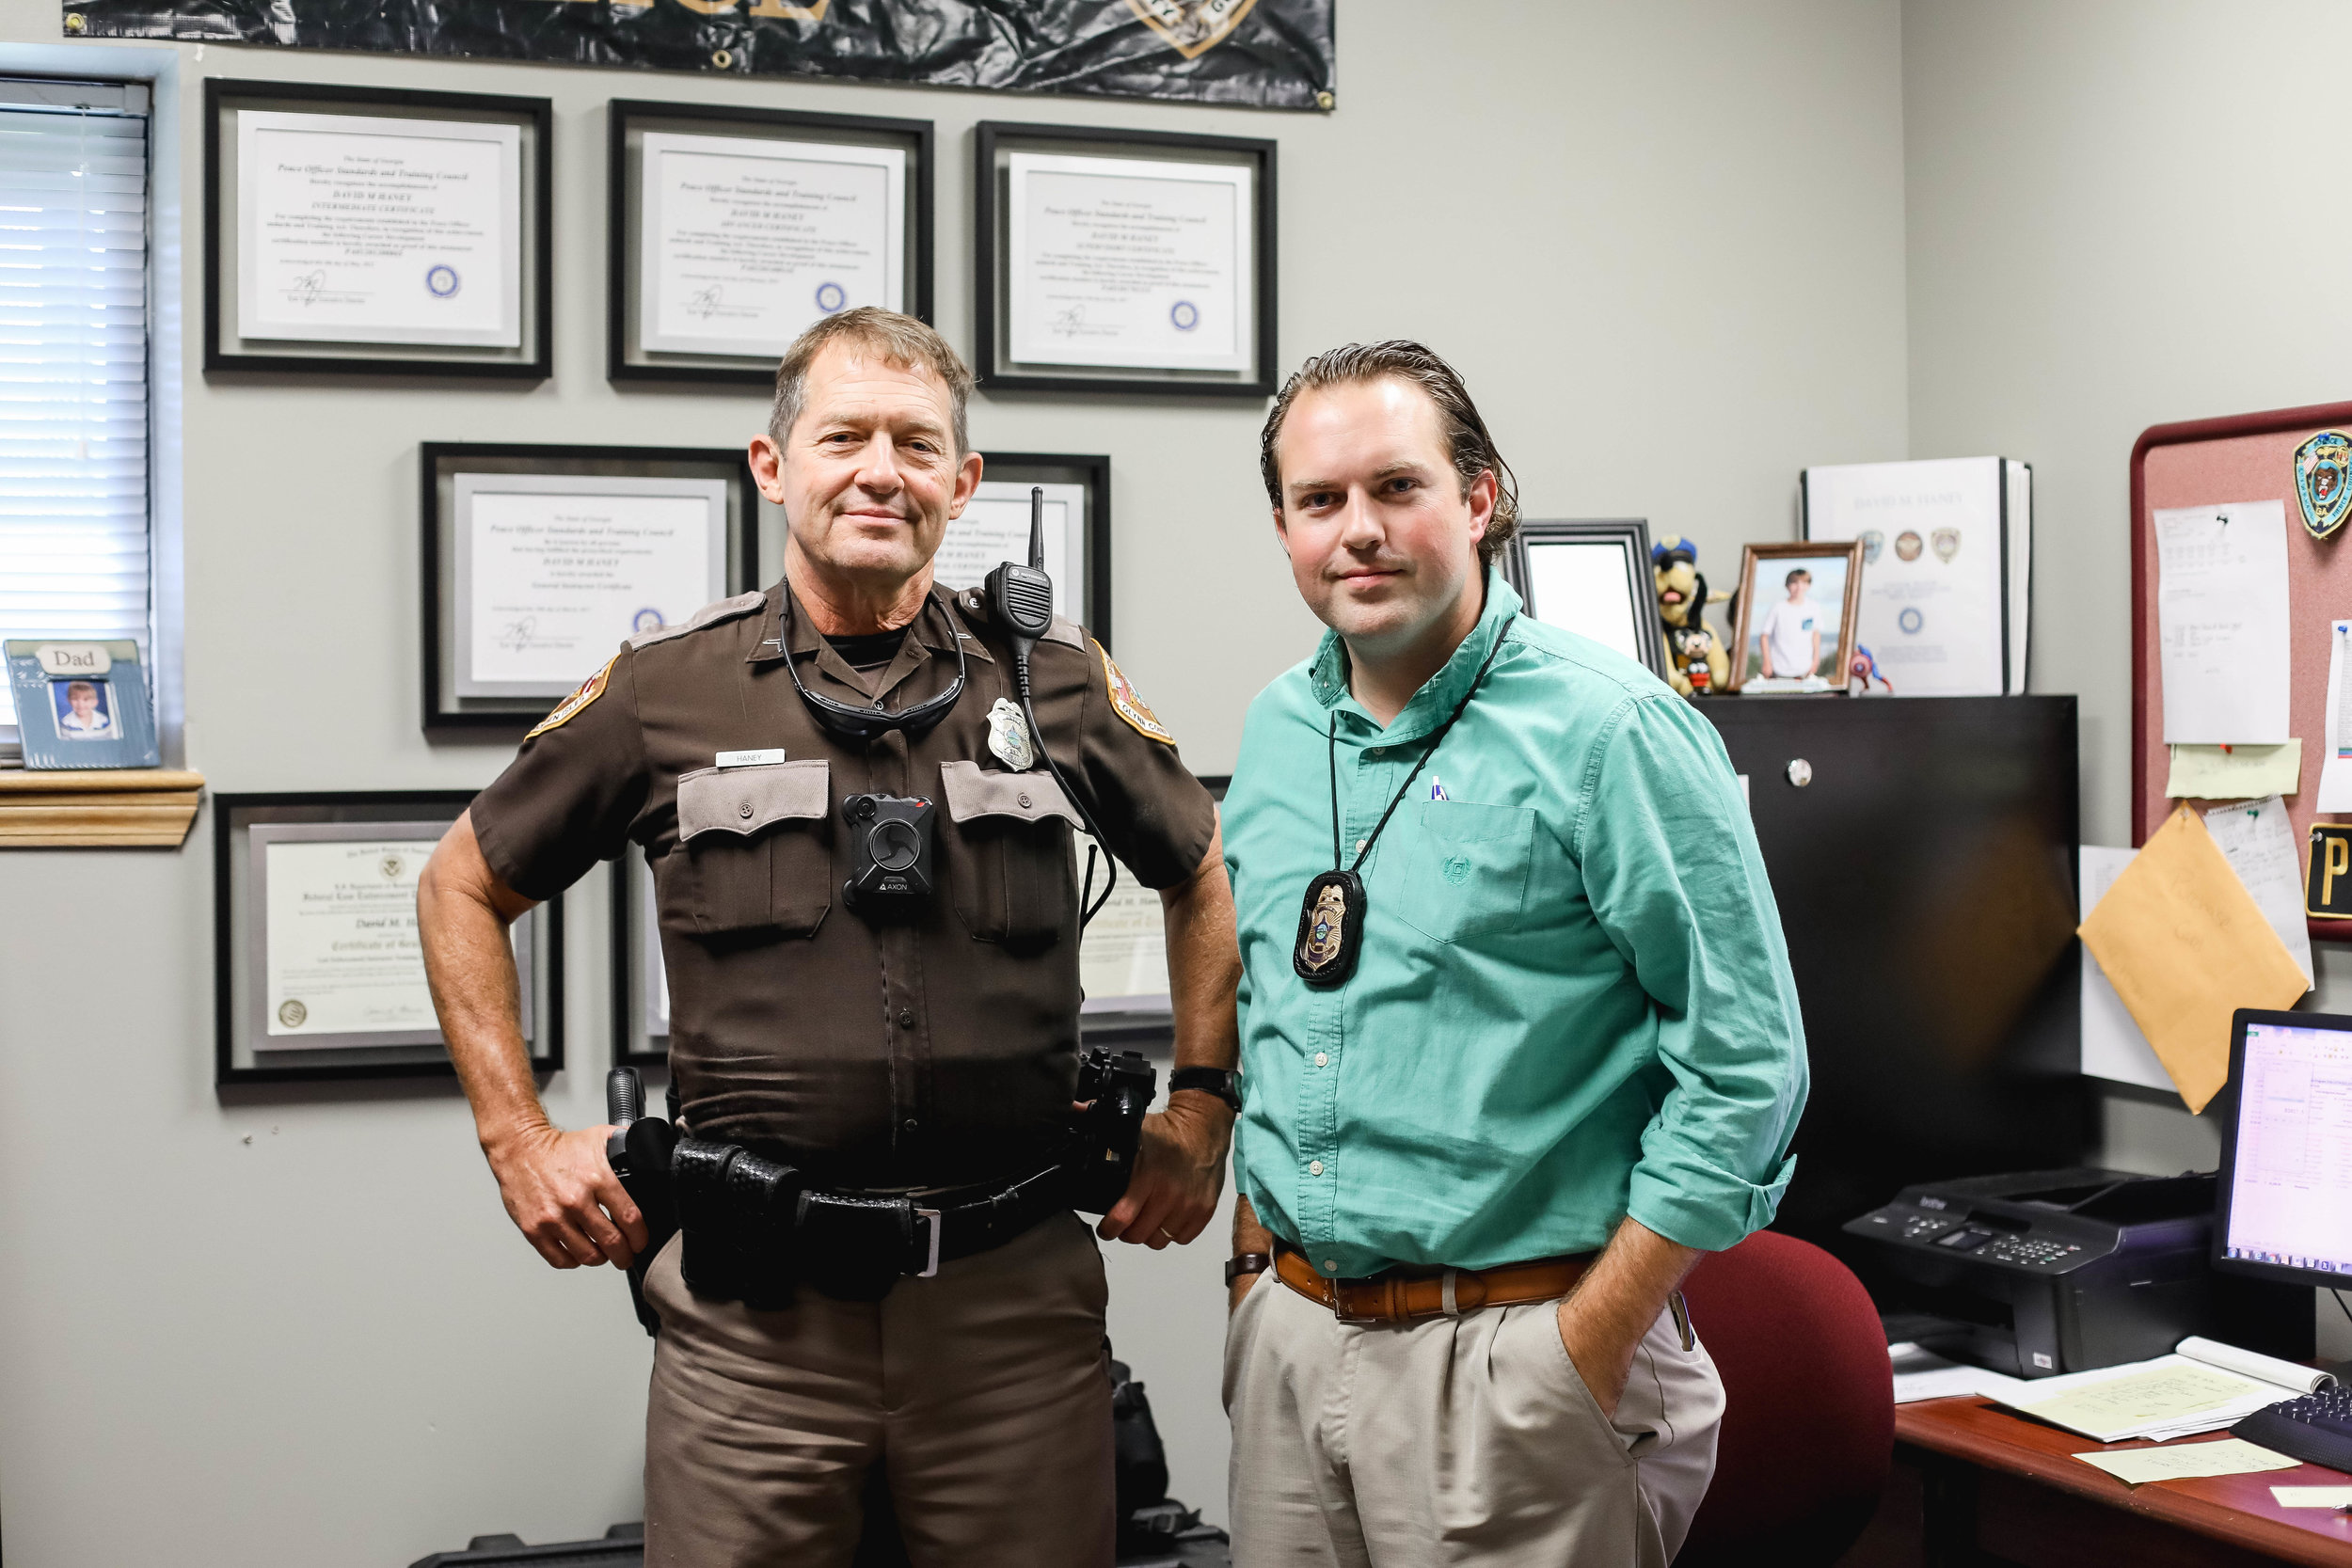 Father & son team at the Glynn County Police Department